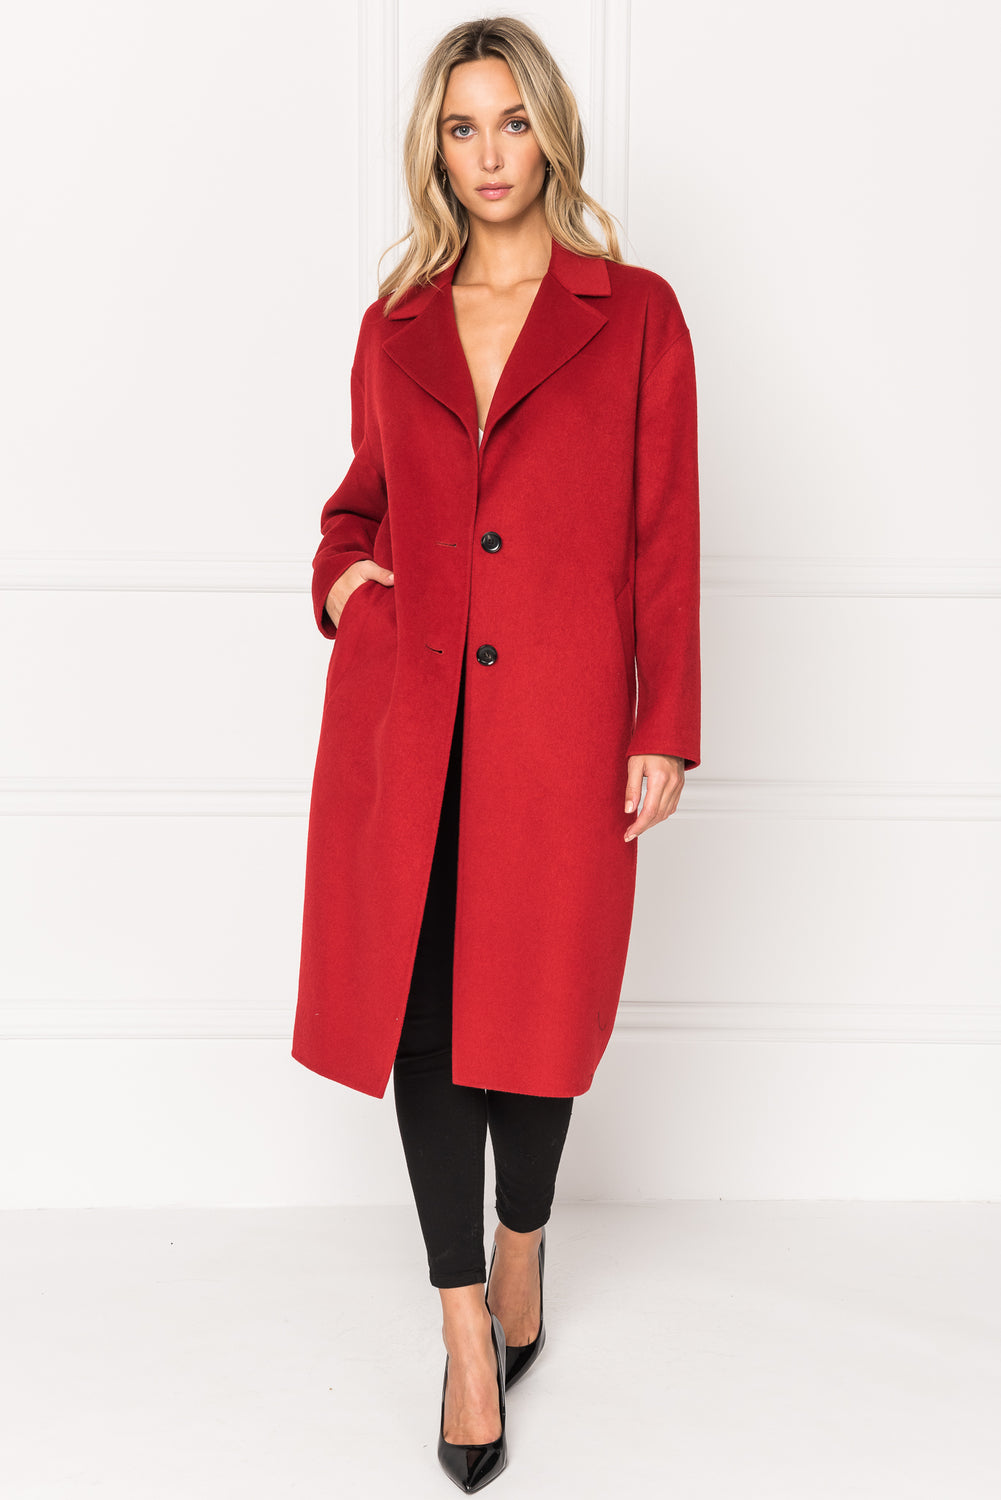 COPPOLA Red Oversized Cocoon Wool Coat